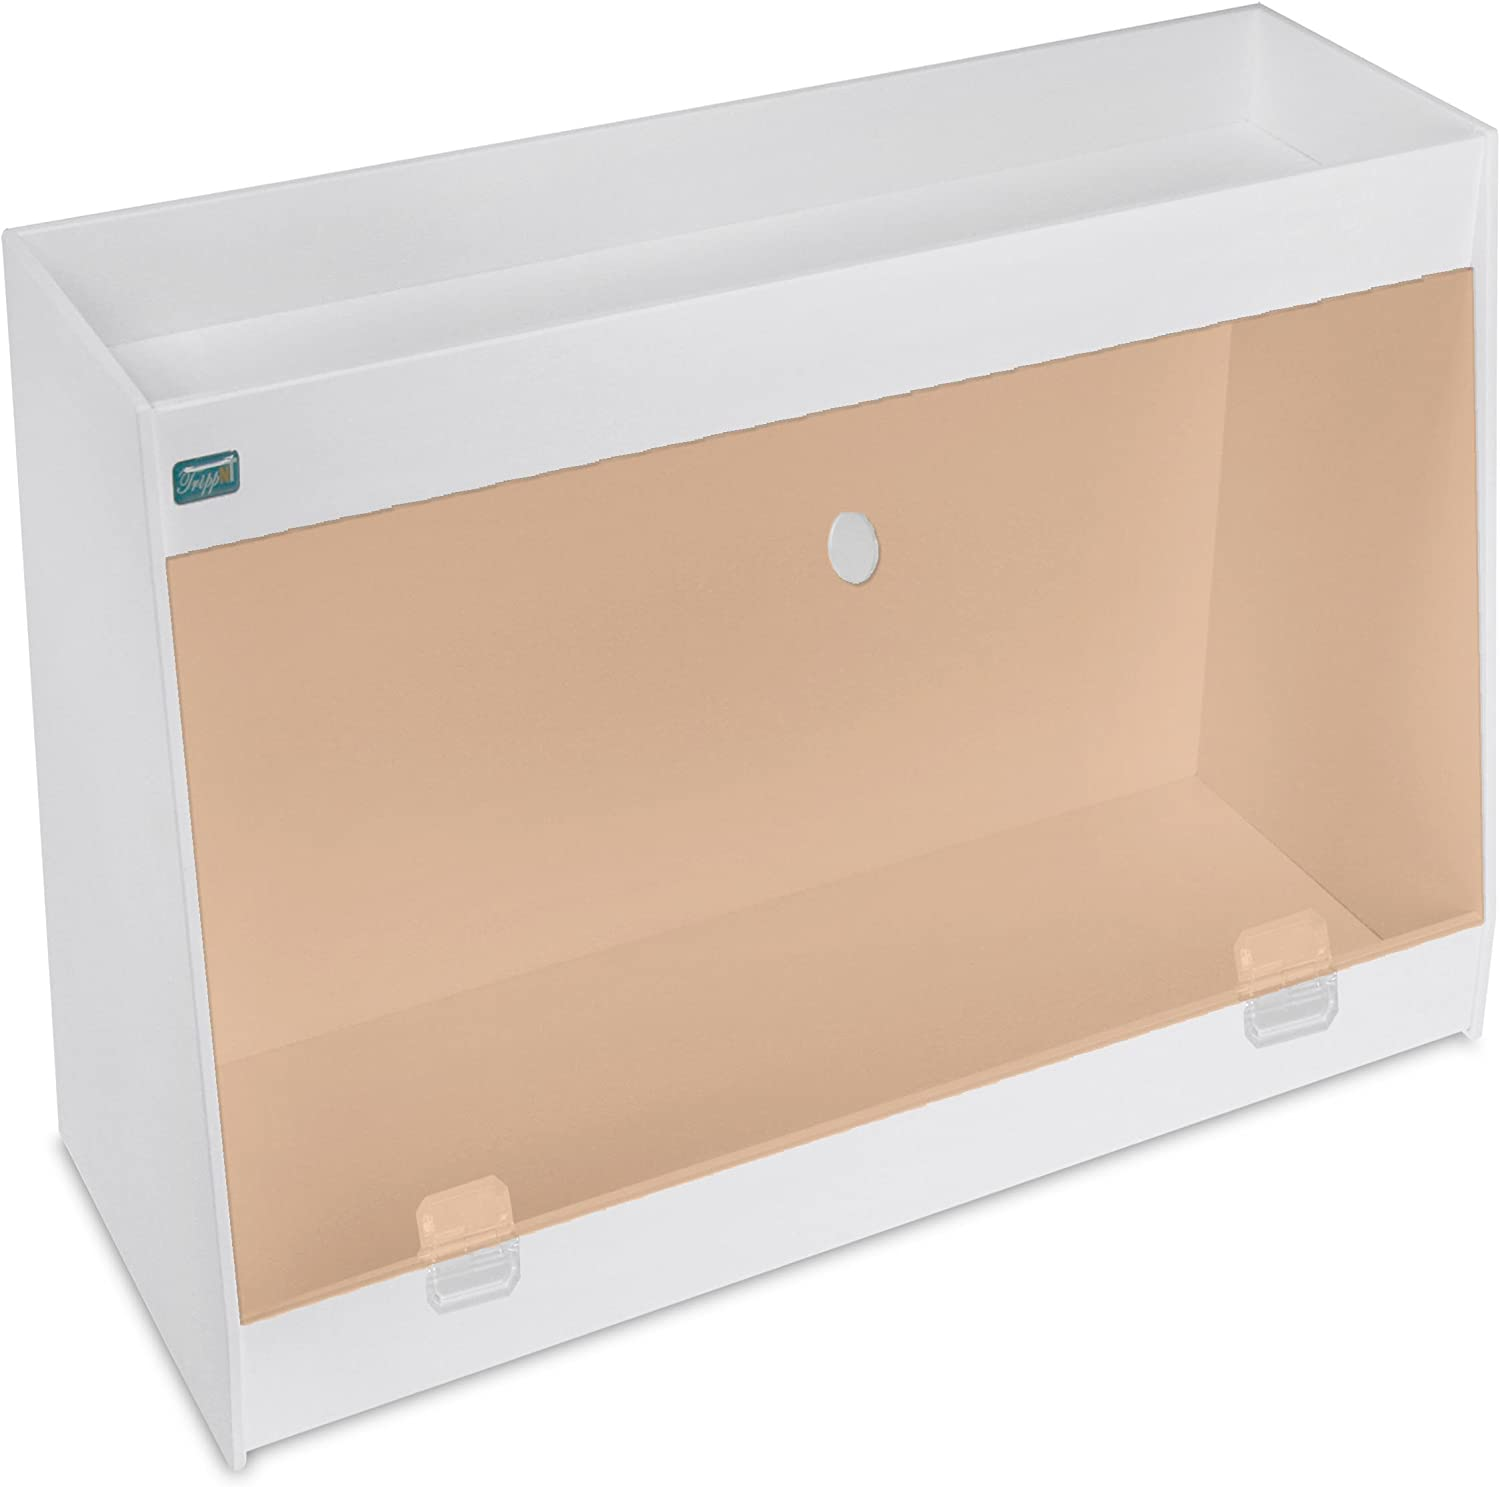 TrippNT 50606 PVC Angled Double Safety Shelves with orange Door, 24-Inch Width x 16-Inch Height x 9-Inch Depth, orange White